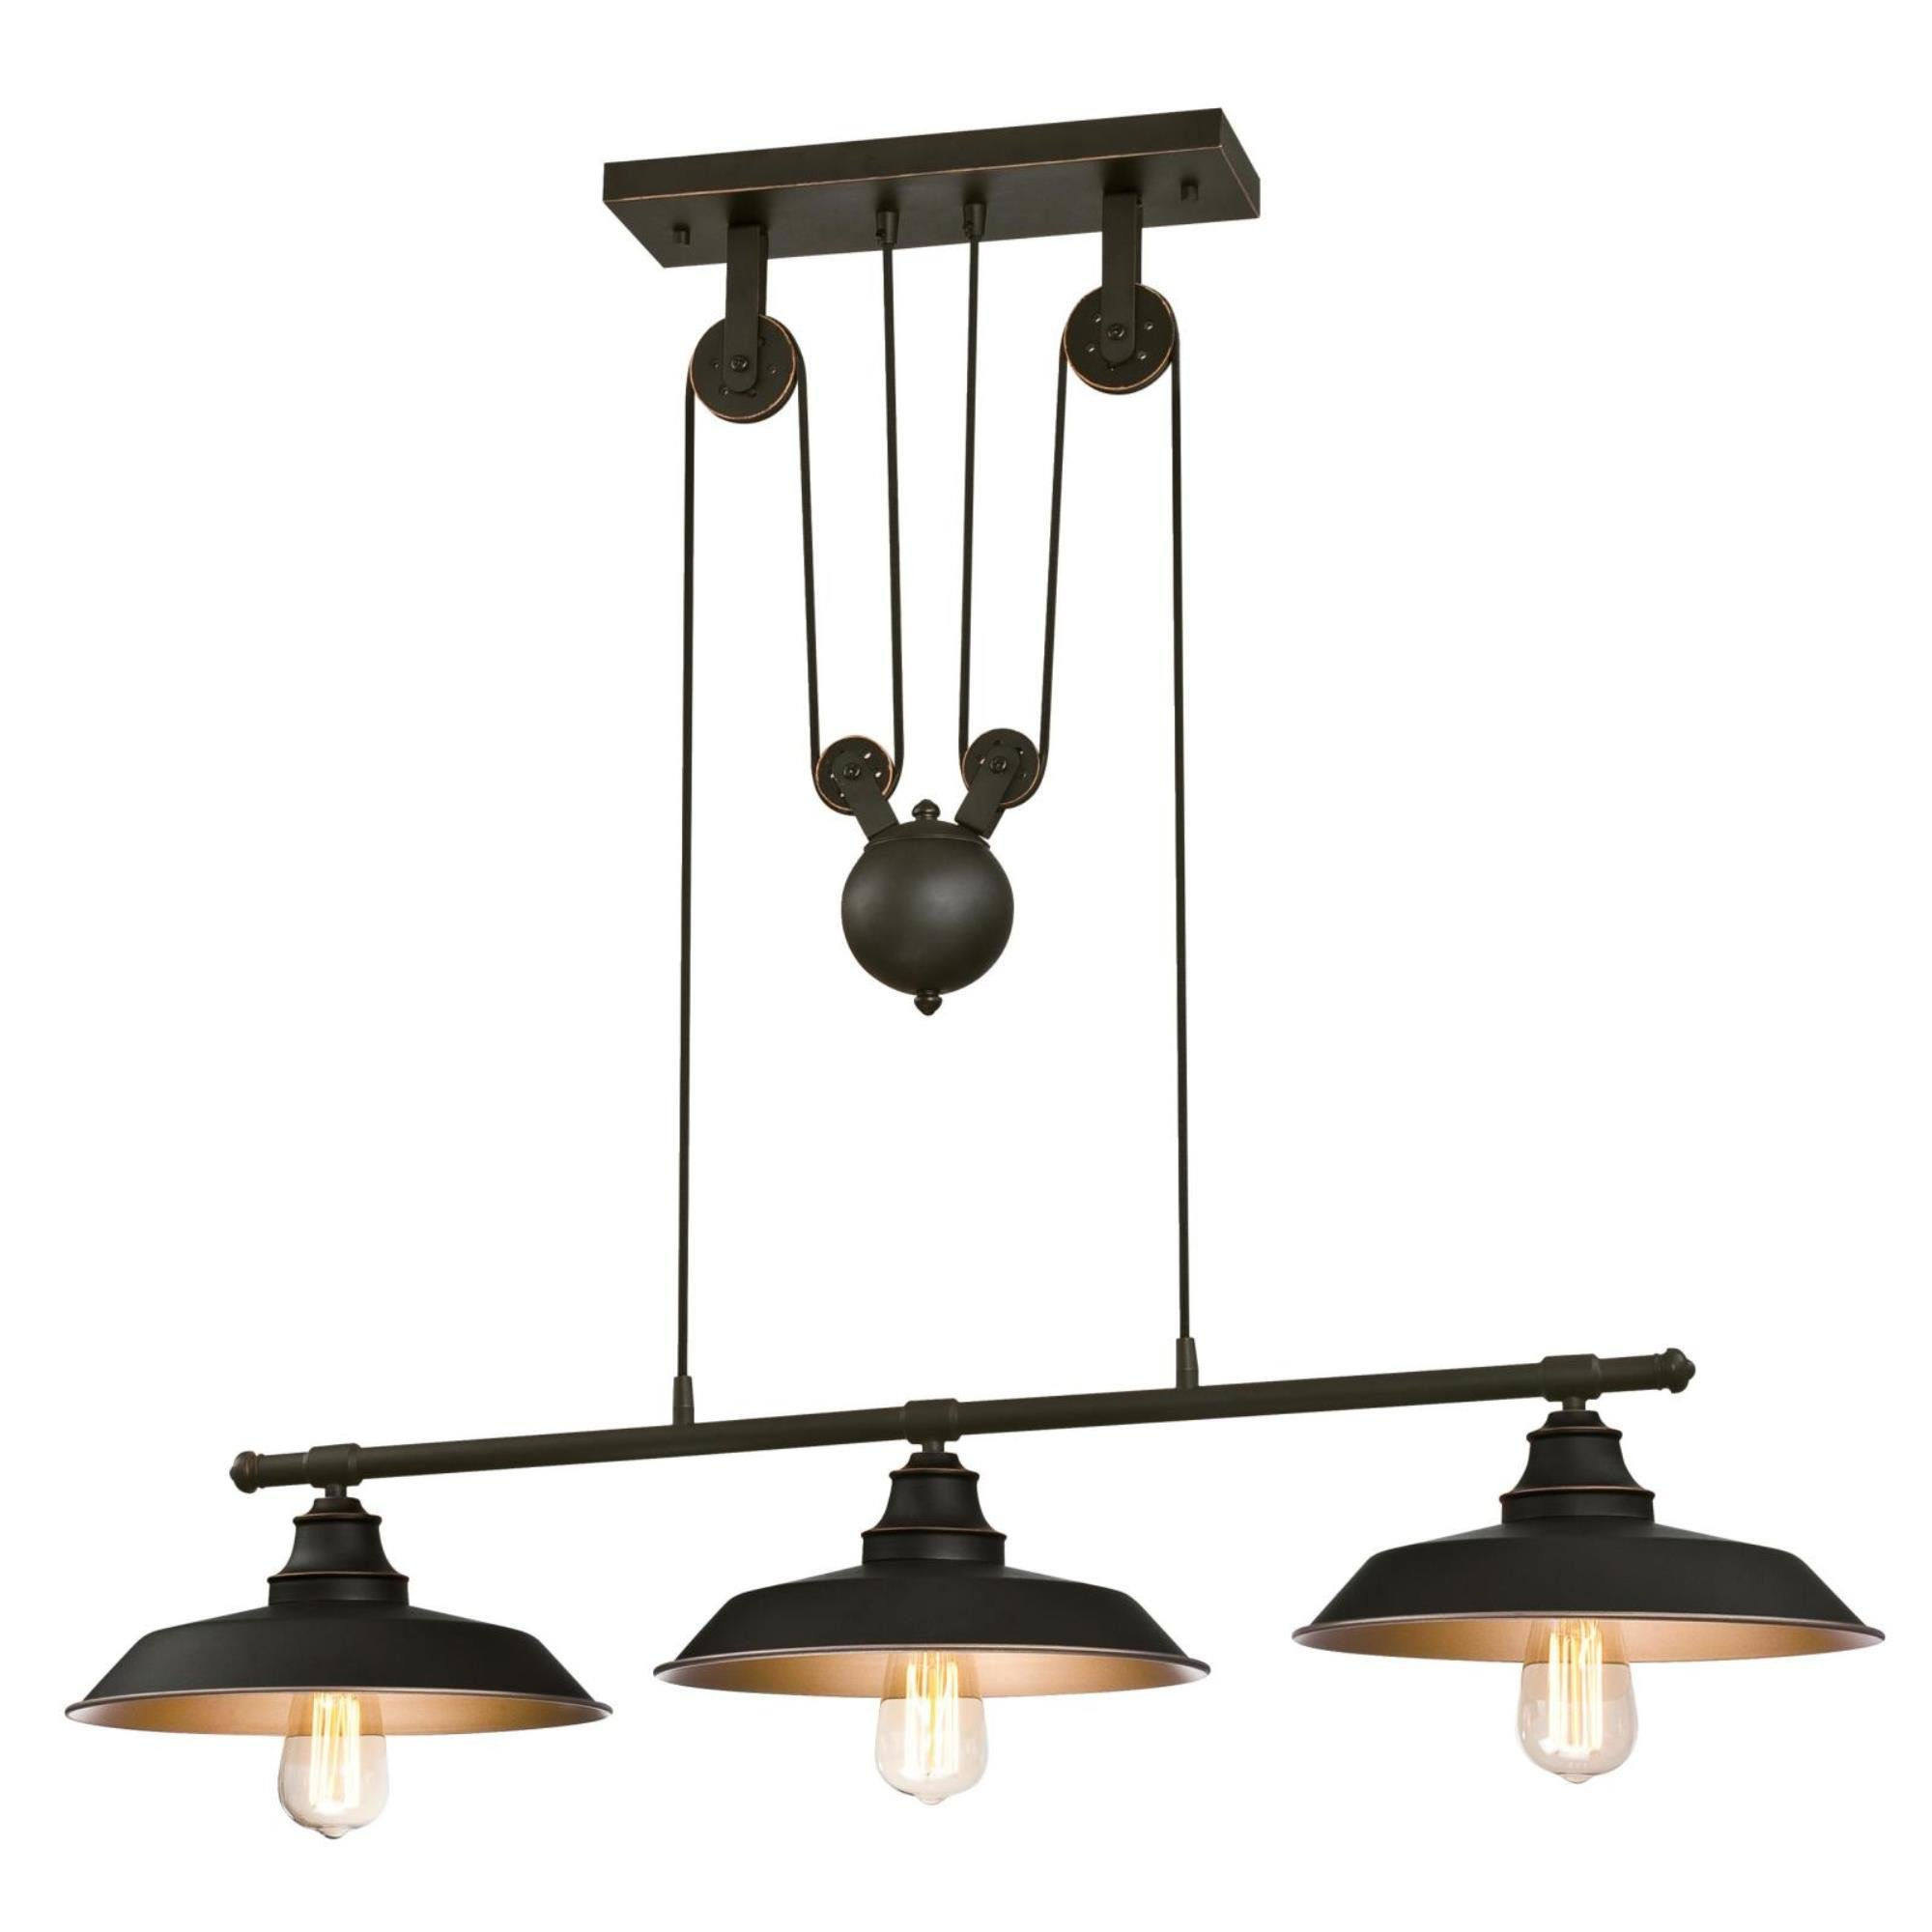 Westinghouse 6332500 Iron Hill Indoor Pulley Pendant, Oil Rubbed Finish with Highlights and Metallic Bronze Interior, Three Light Island by Westinghouse